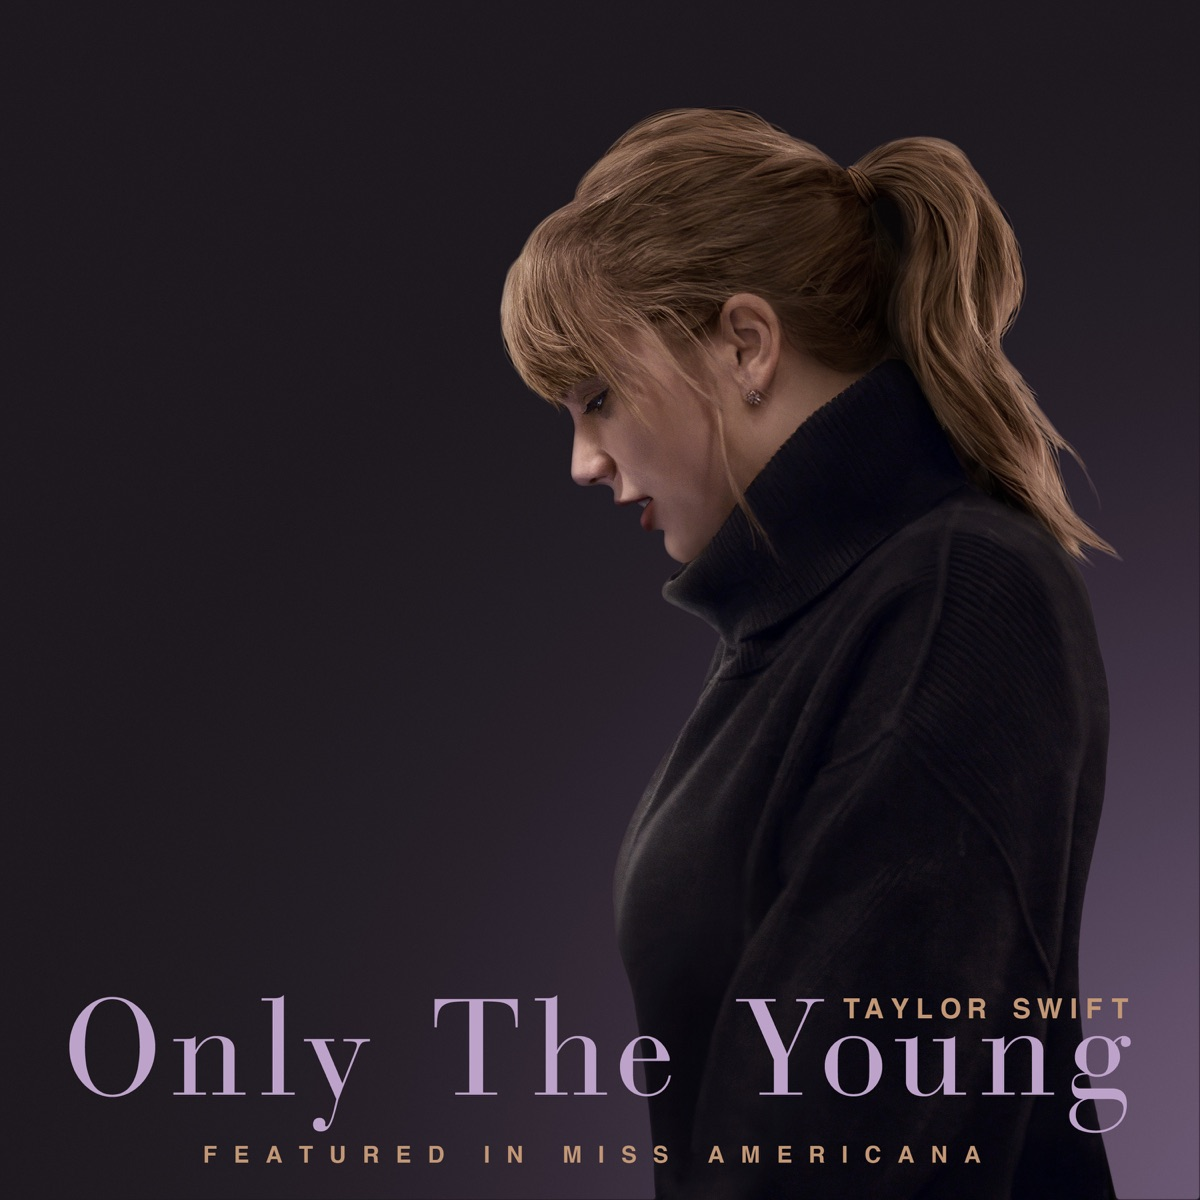 Taylor Swift – Only The Young (Featured in Miss Americana) – Single [iTunes Plus M4A]